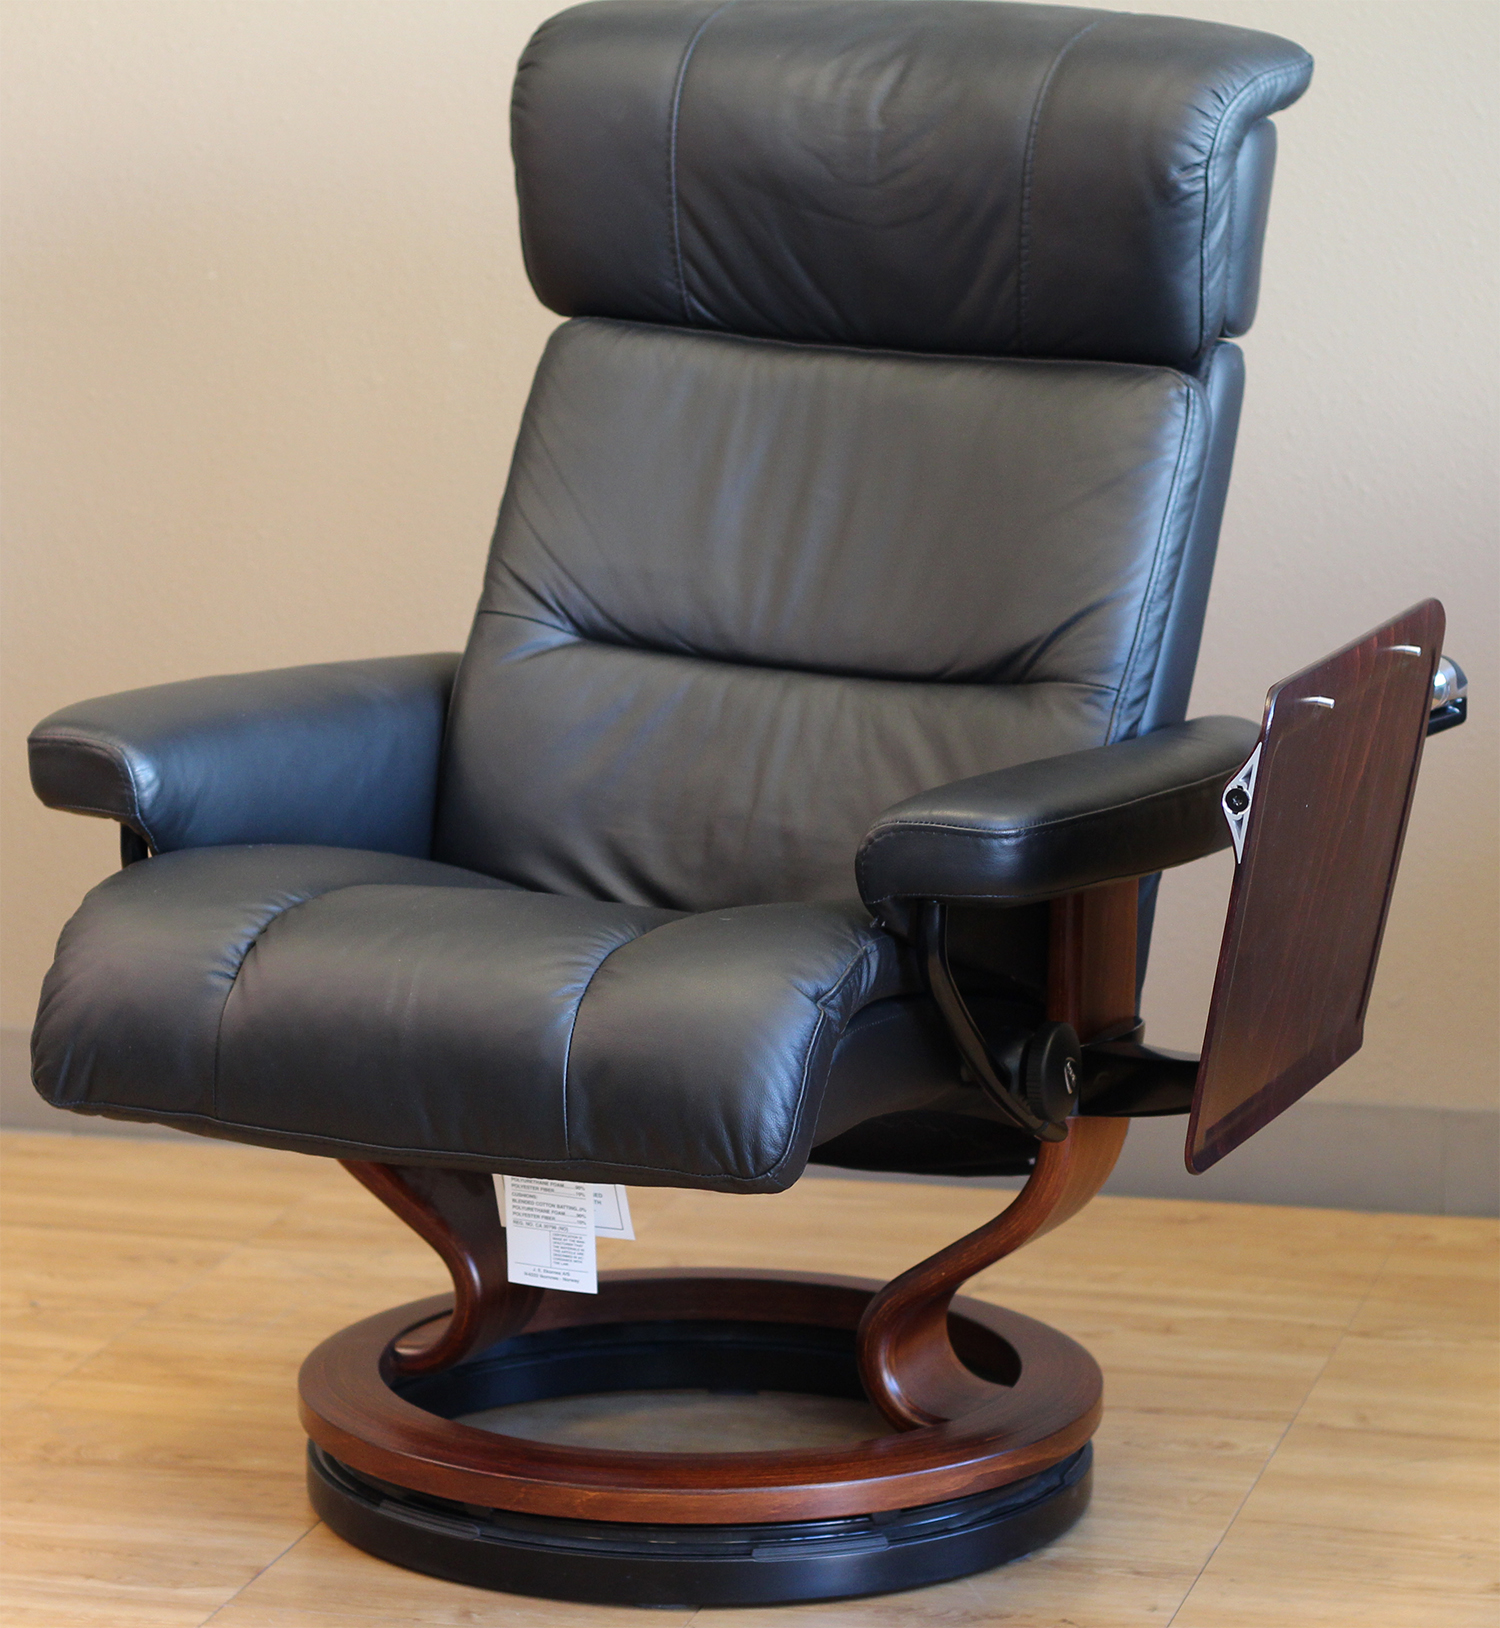 Stressless recliner elevator ring for ekornes chairs for Chair recliner